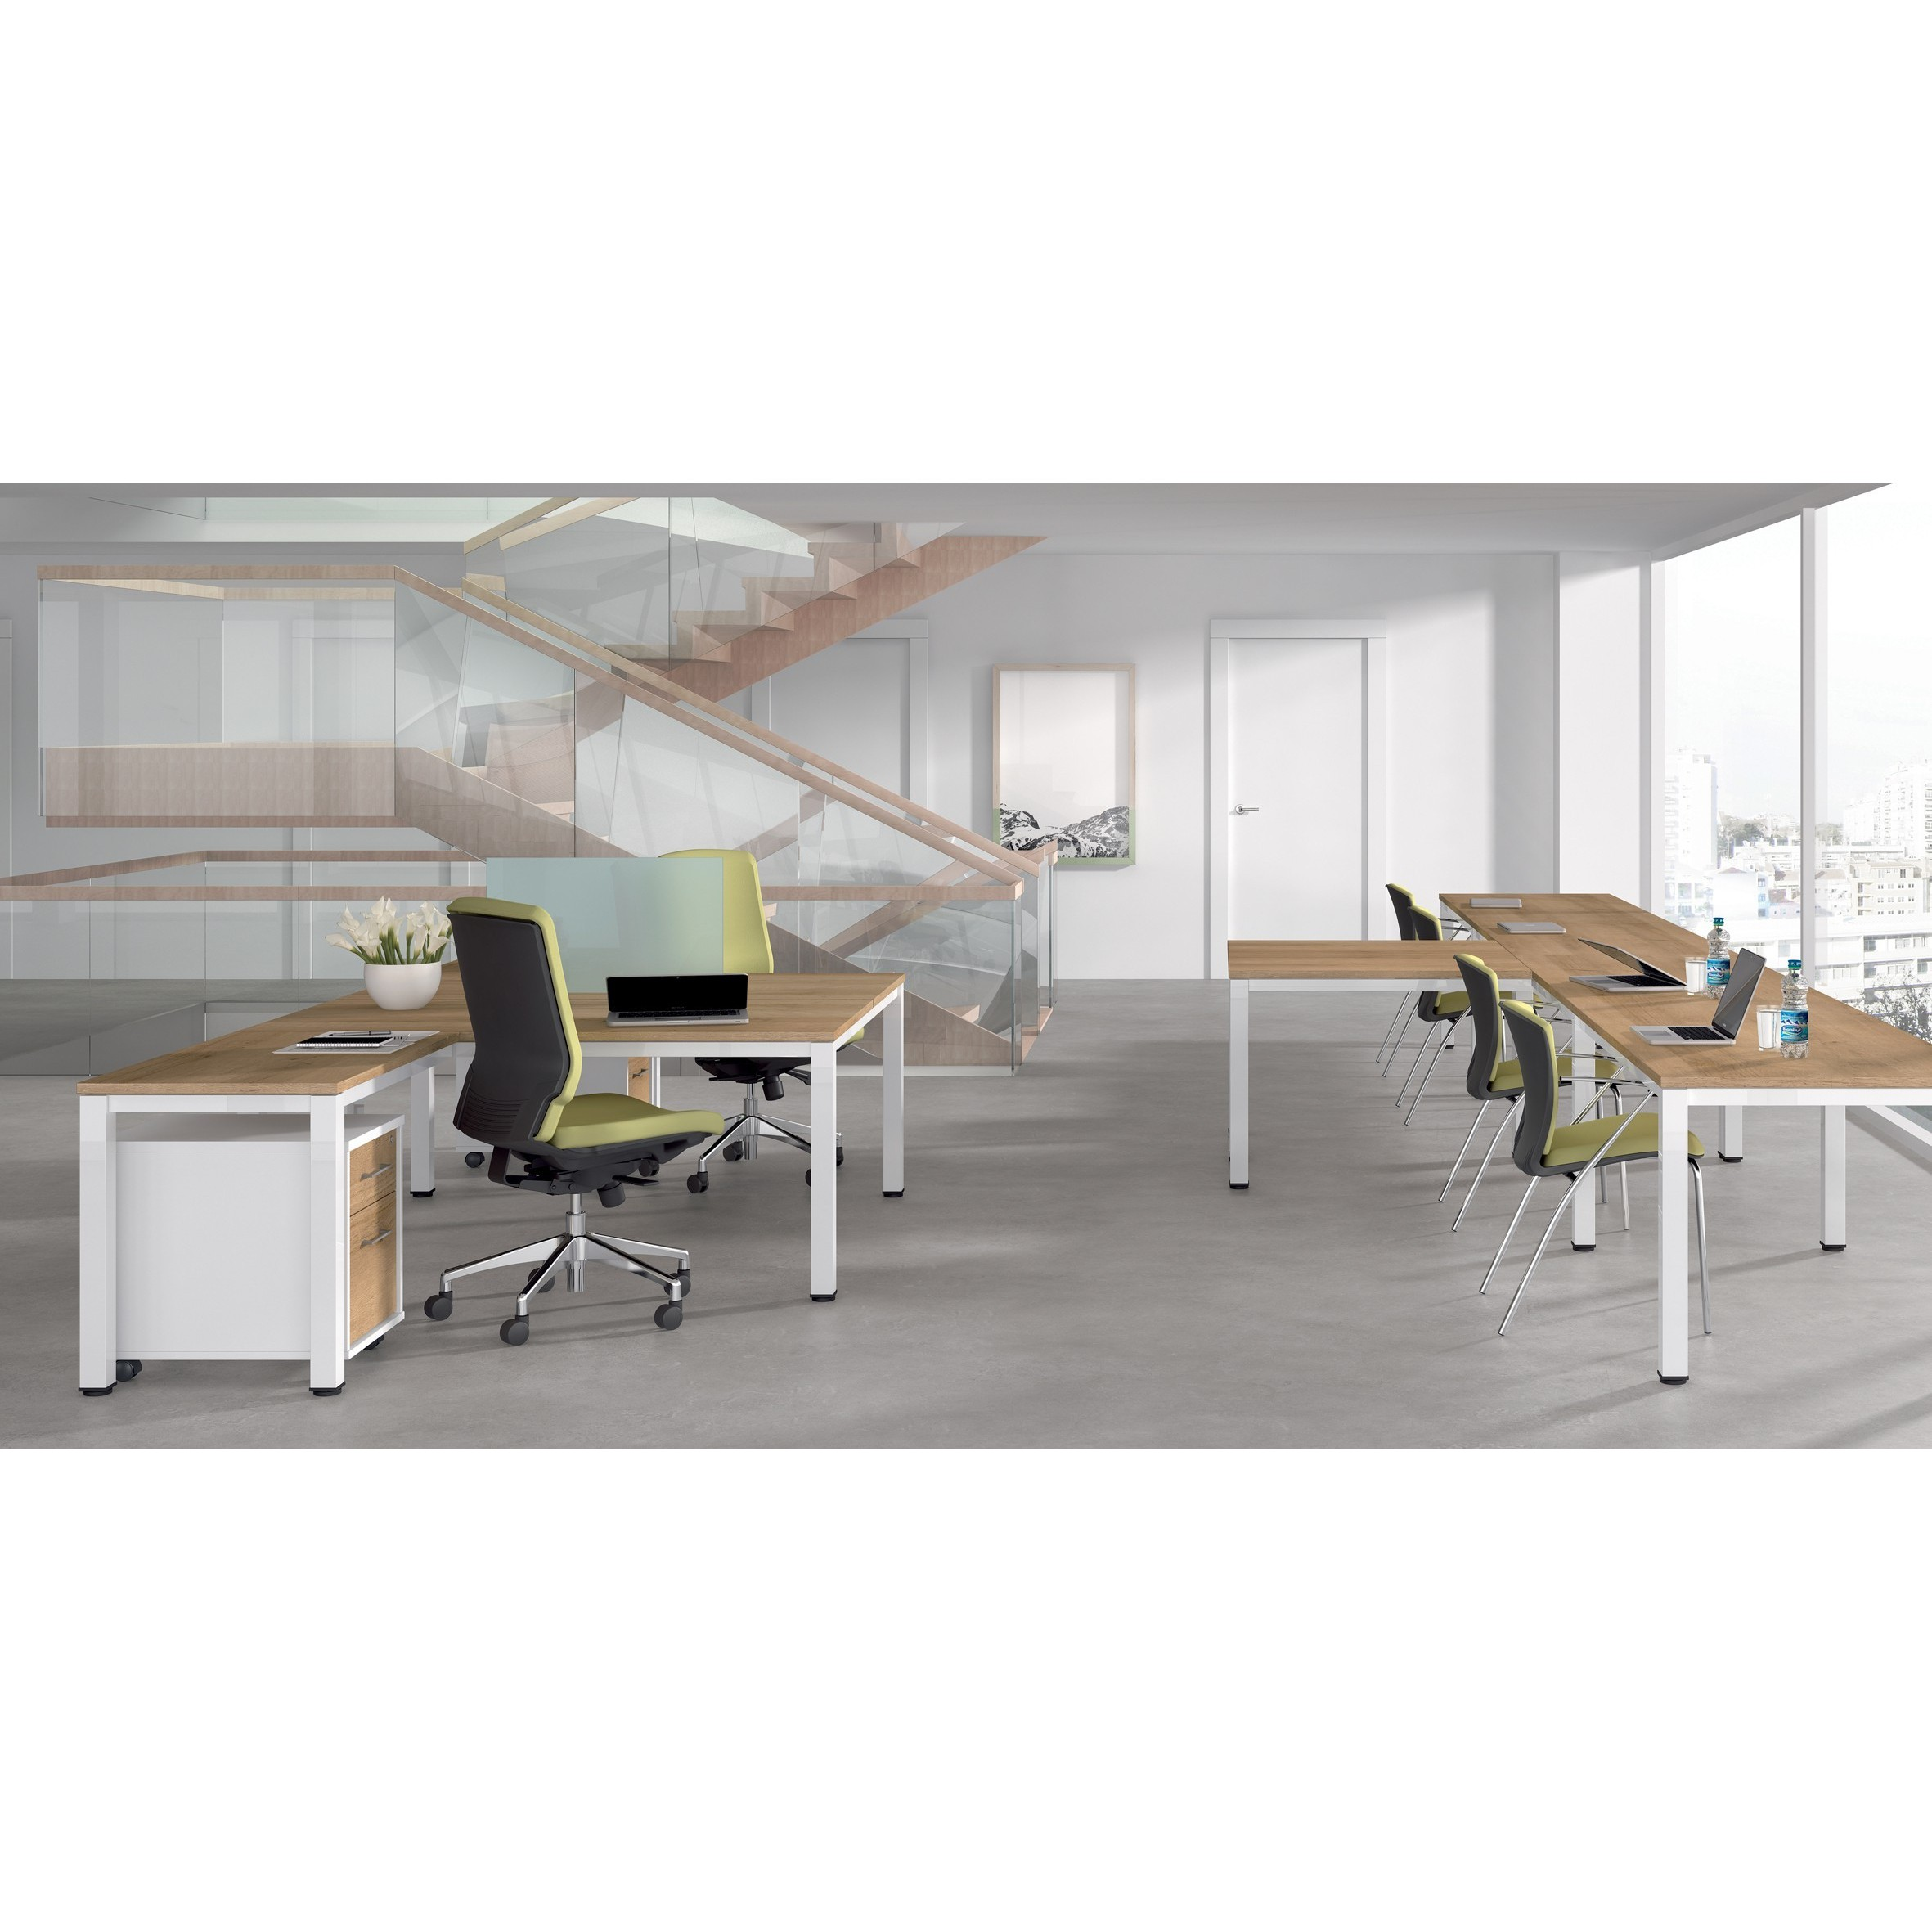 TABLE OFFICE 'S EXECUTIVE SERIES 140X80 CHROME/GREY